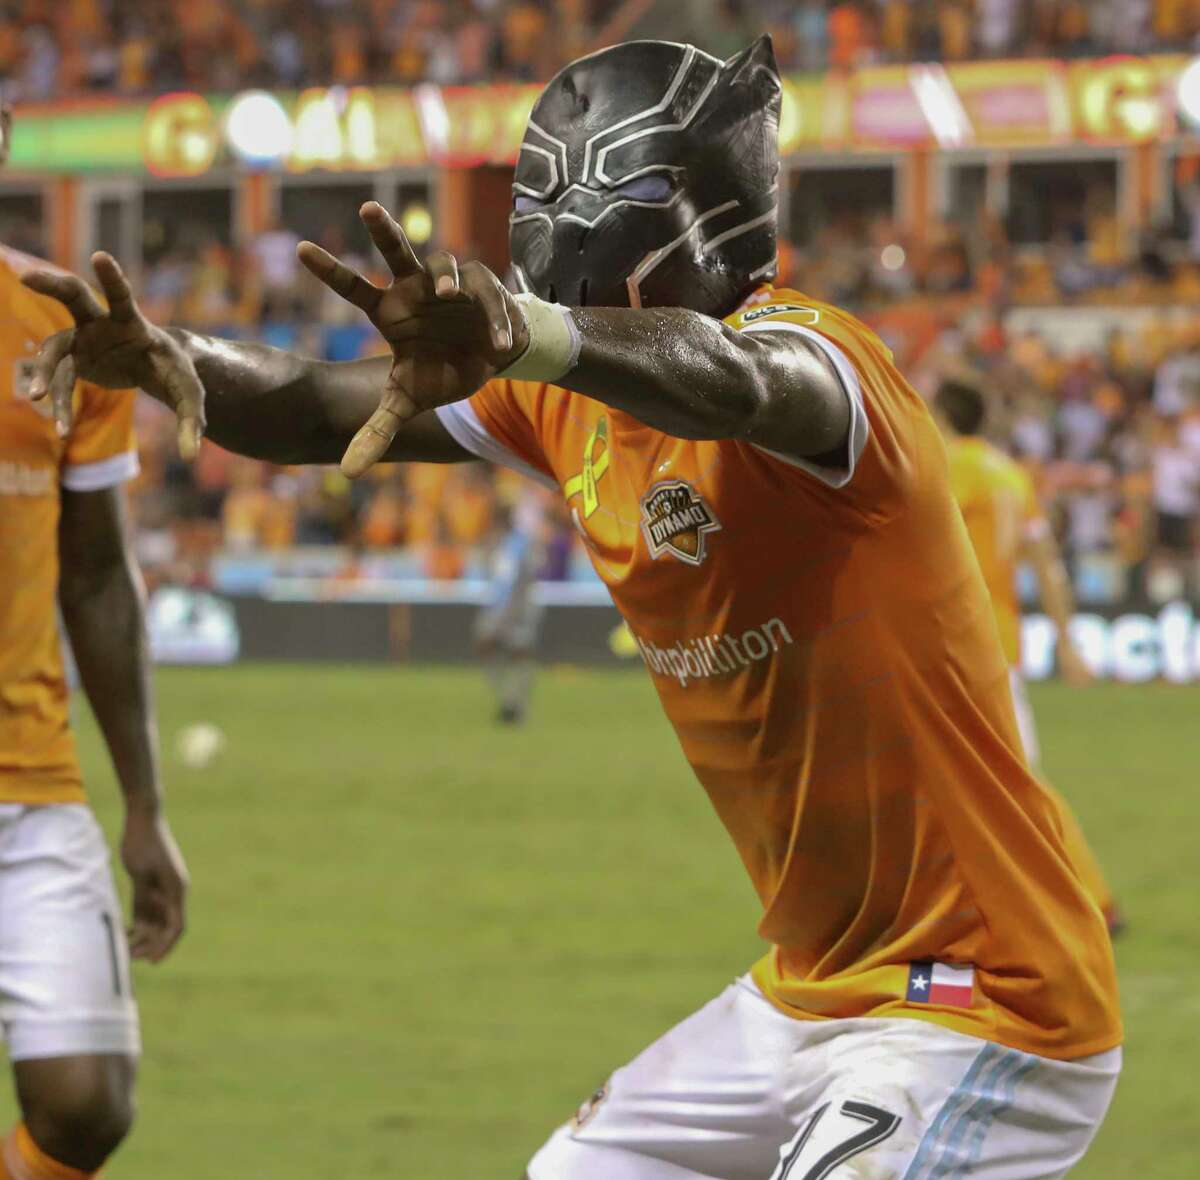 Alberth Elis puts a scare into his opponents after scoring in the 69th minute Saturday by donning a panther mask.